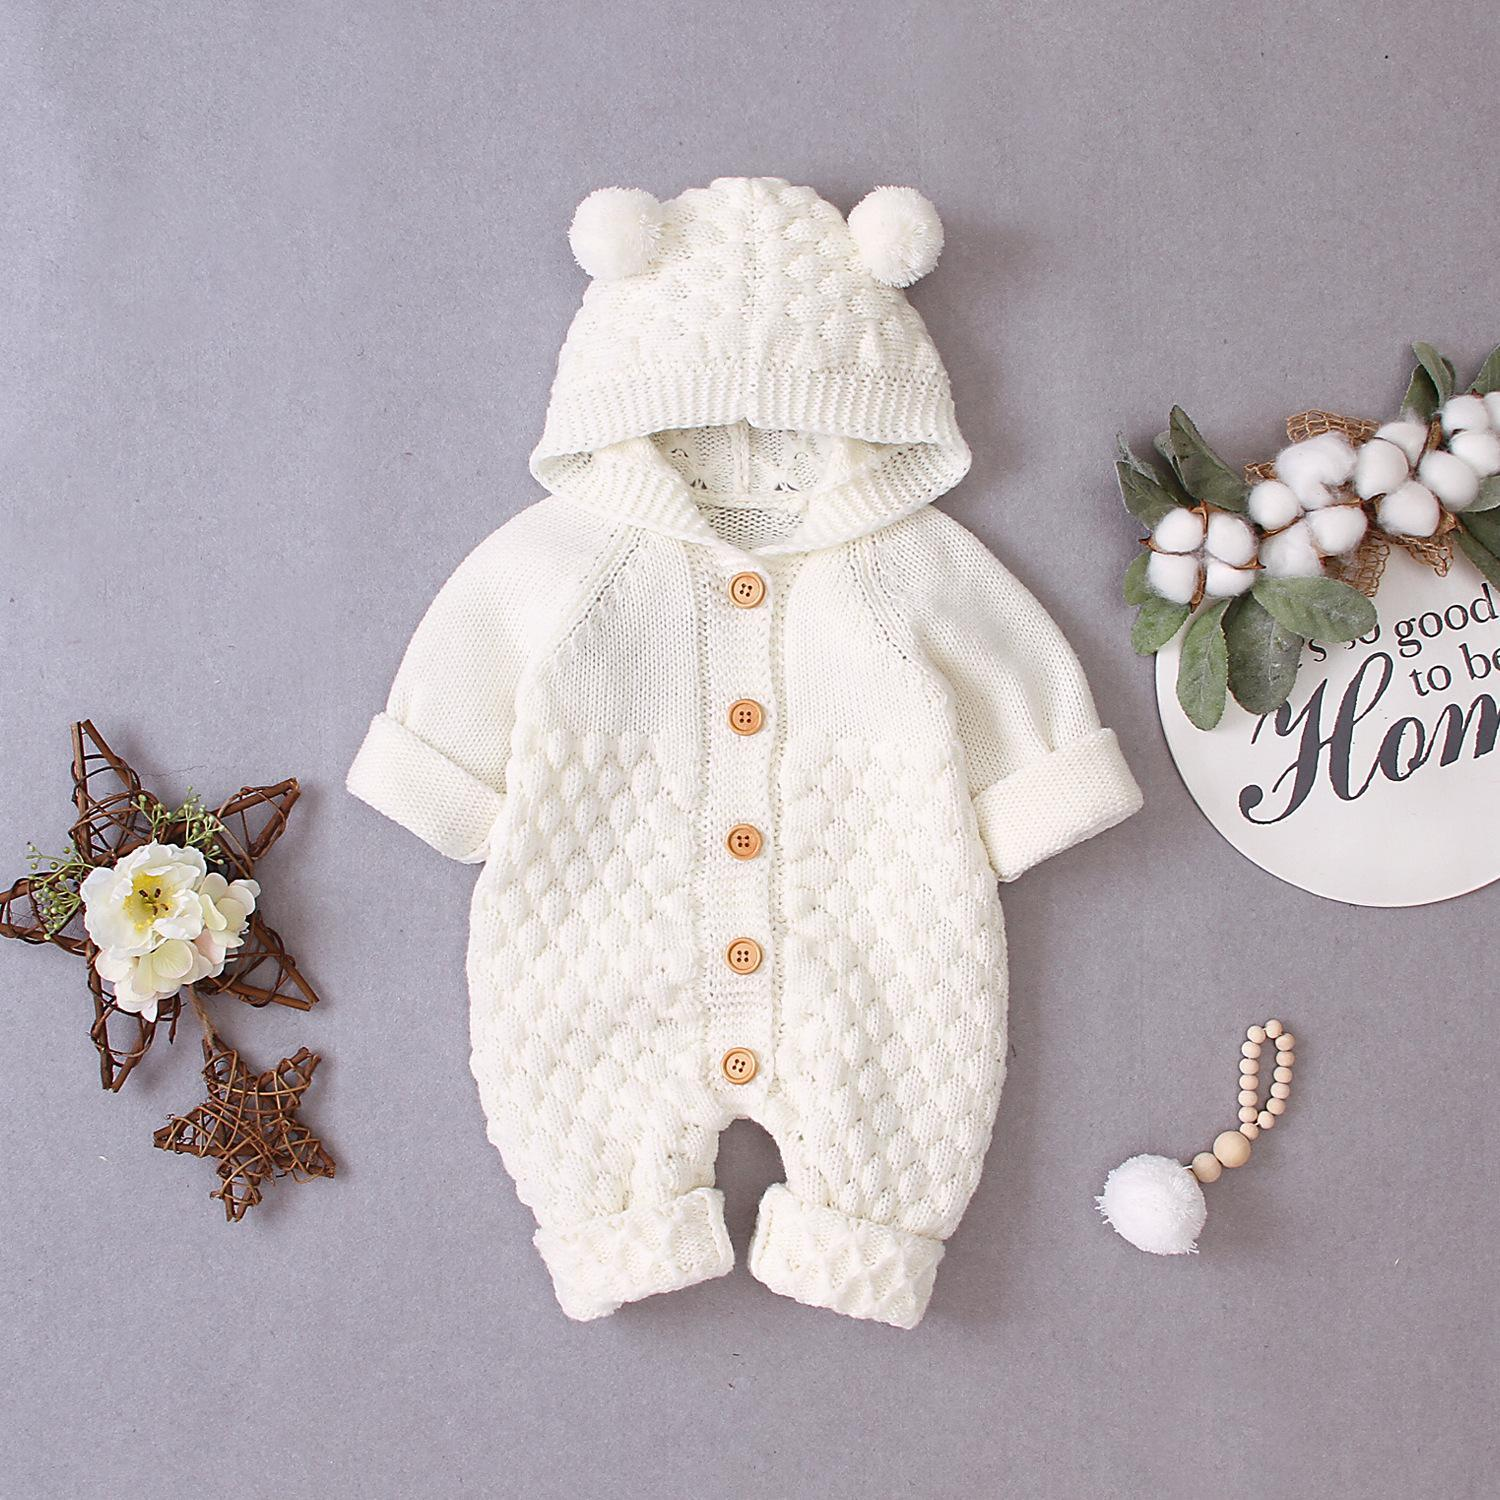 Children's baby solid color fur ball hooded knitted jacket one-piece